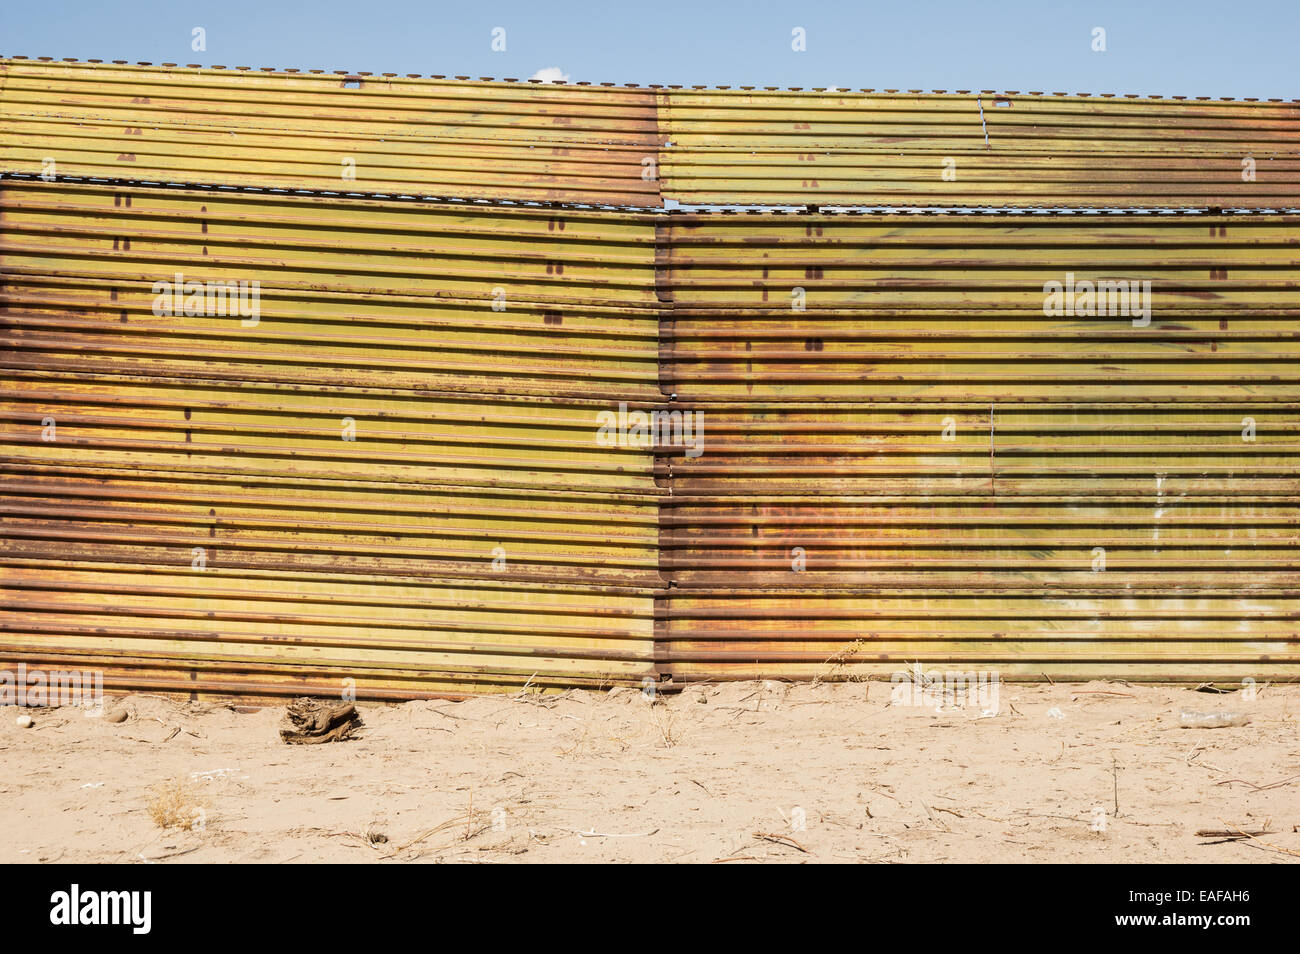 the United States border with Mexico near Algodones with a metal fence barrier - Stock Image